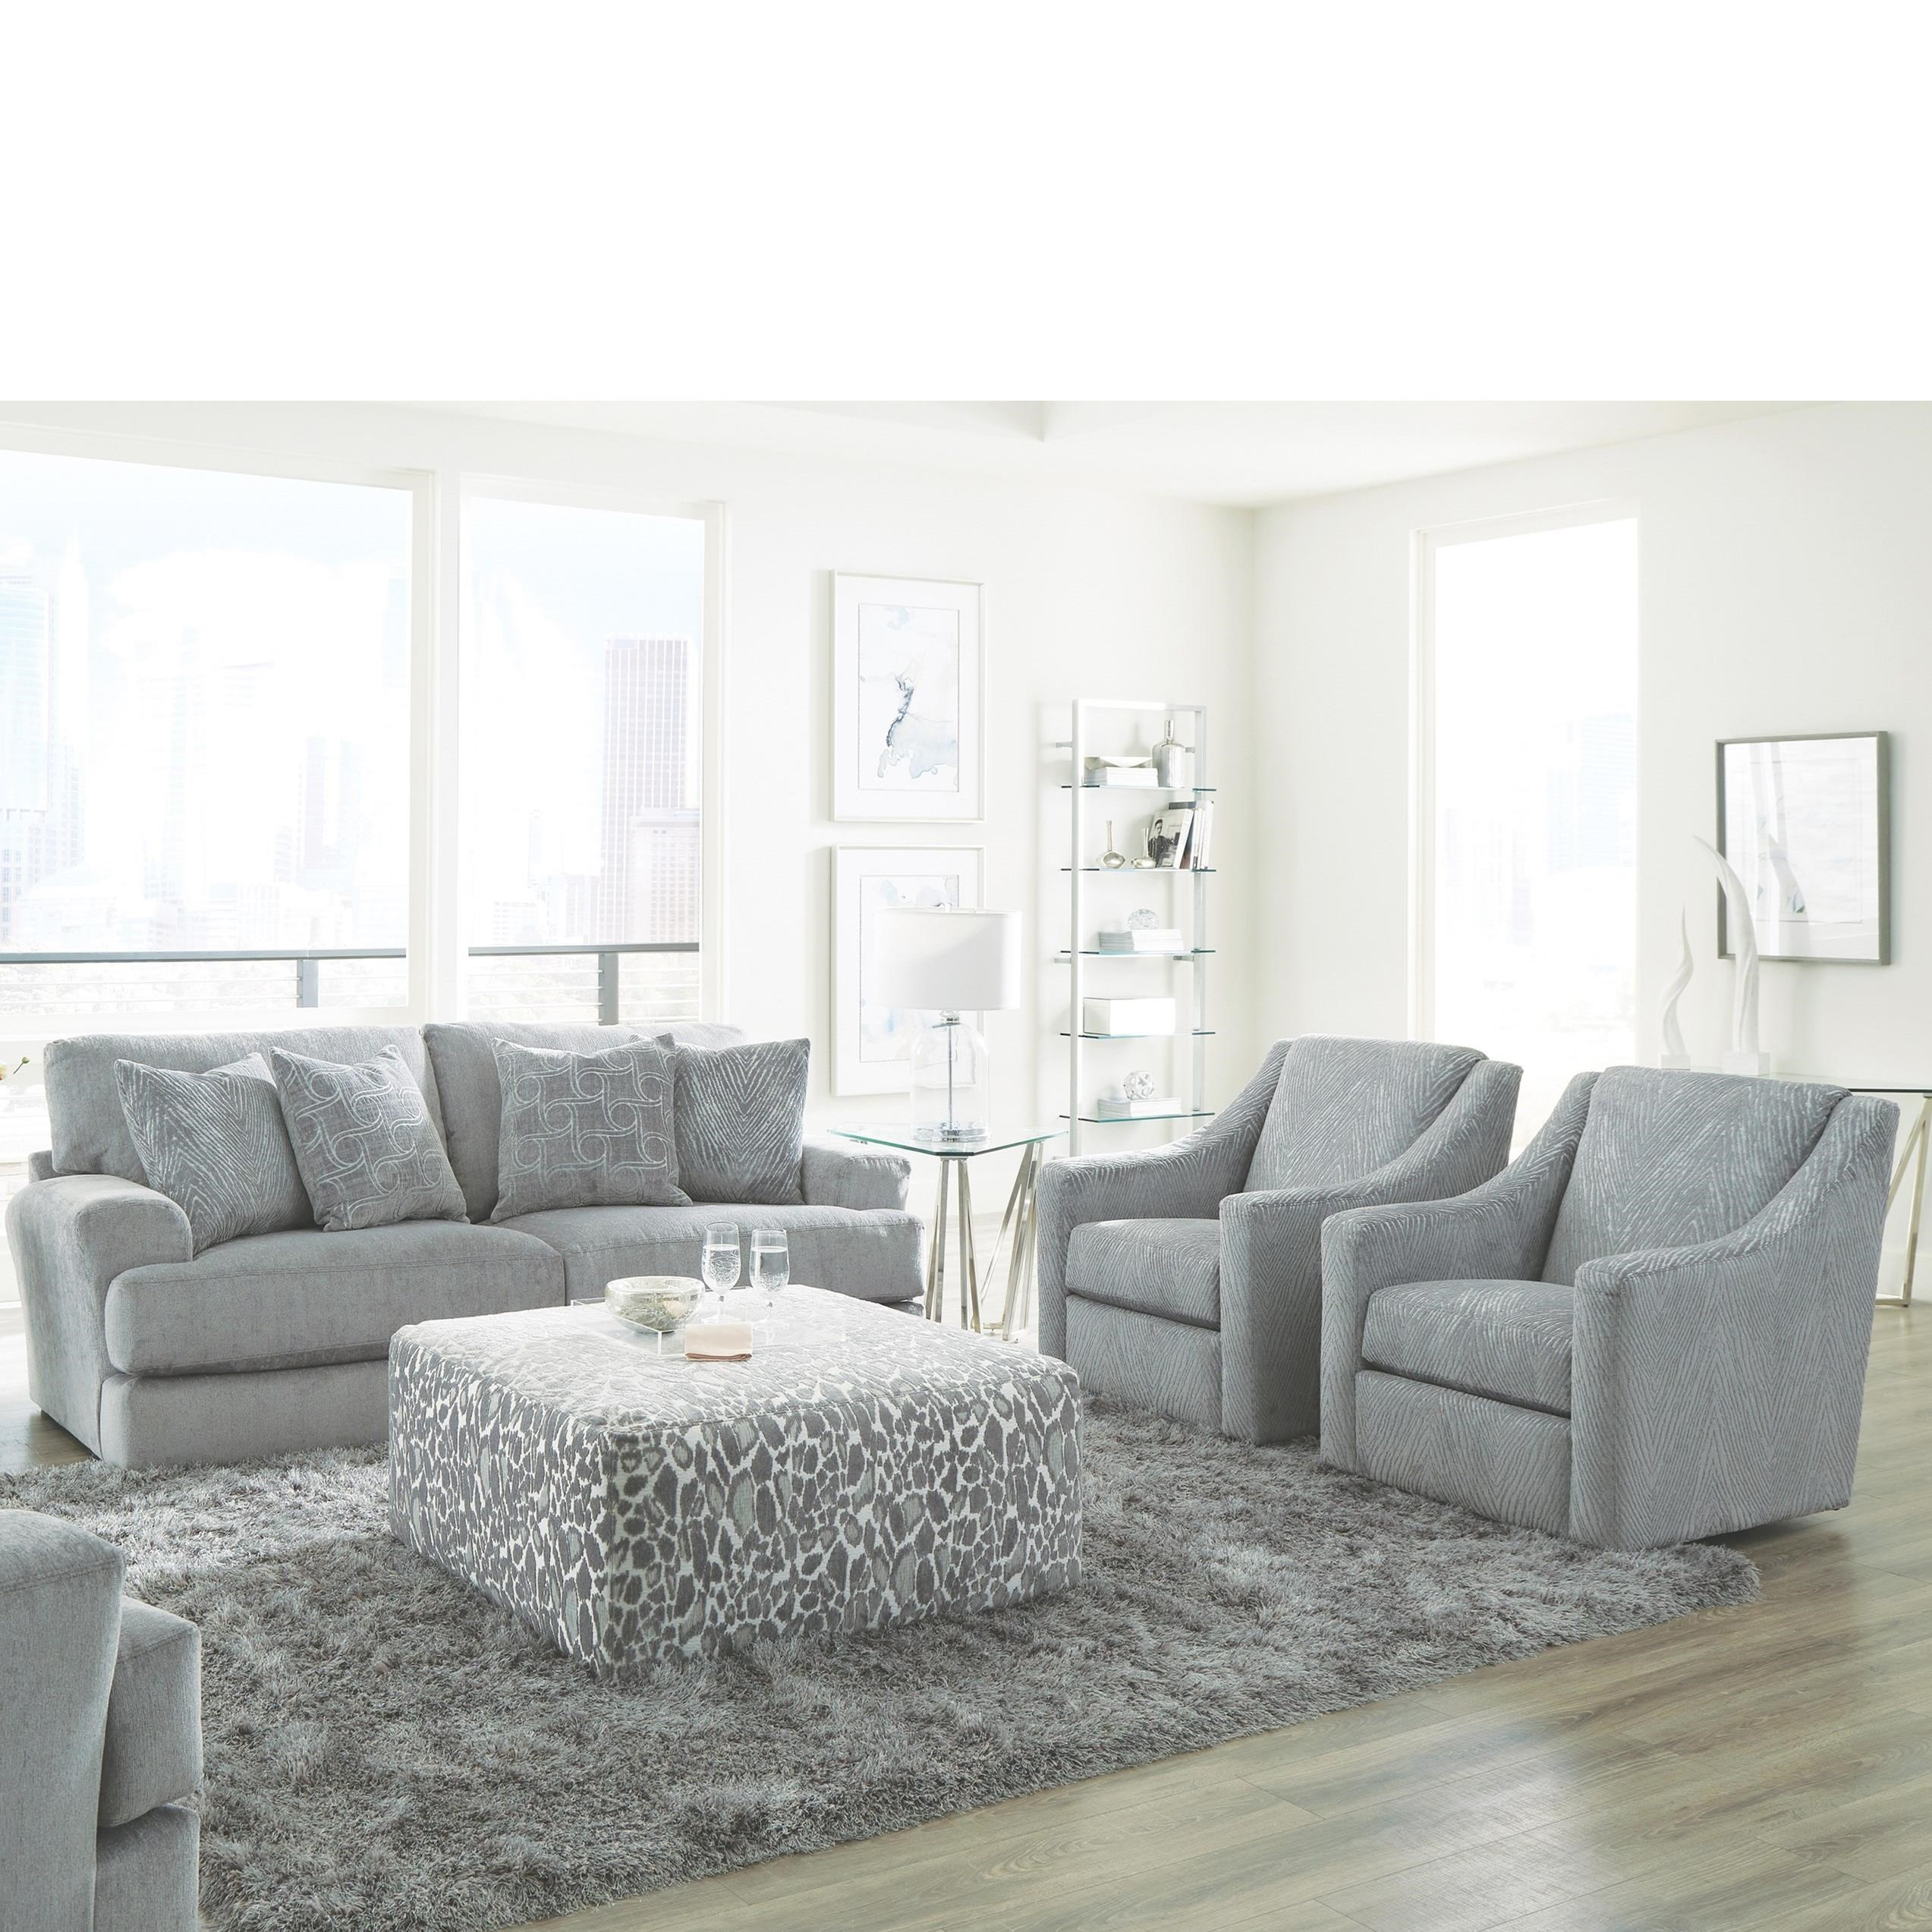 Lamar Living Room Group by Jackson Furniture at Northeast Factory Direct